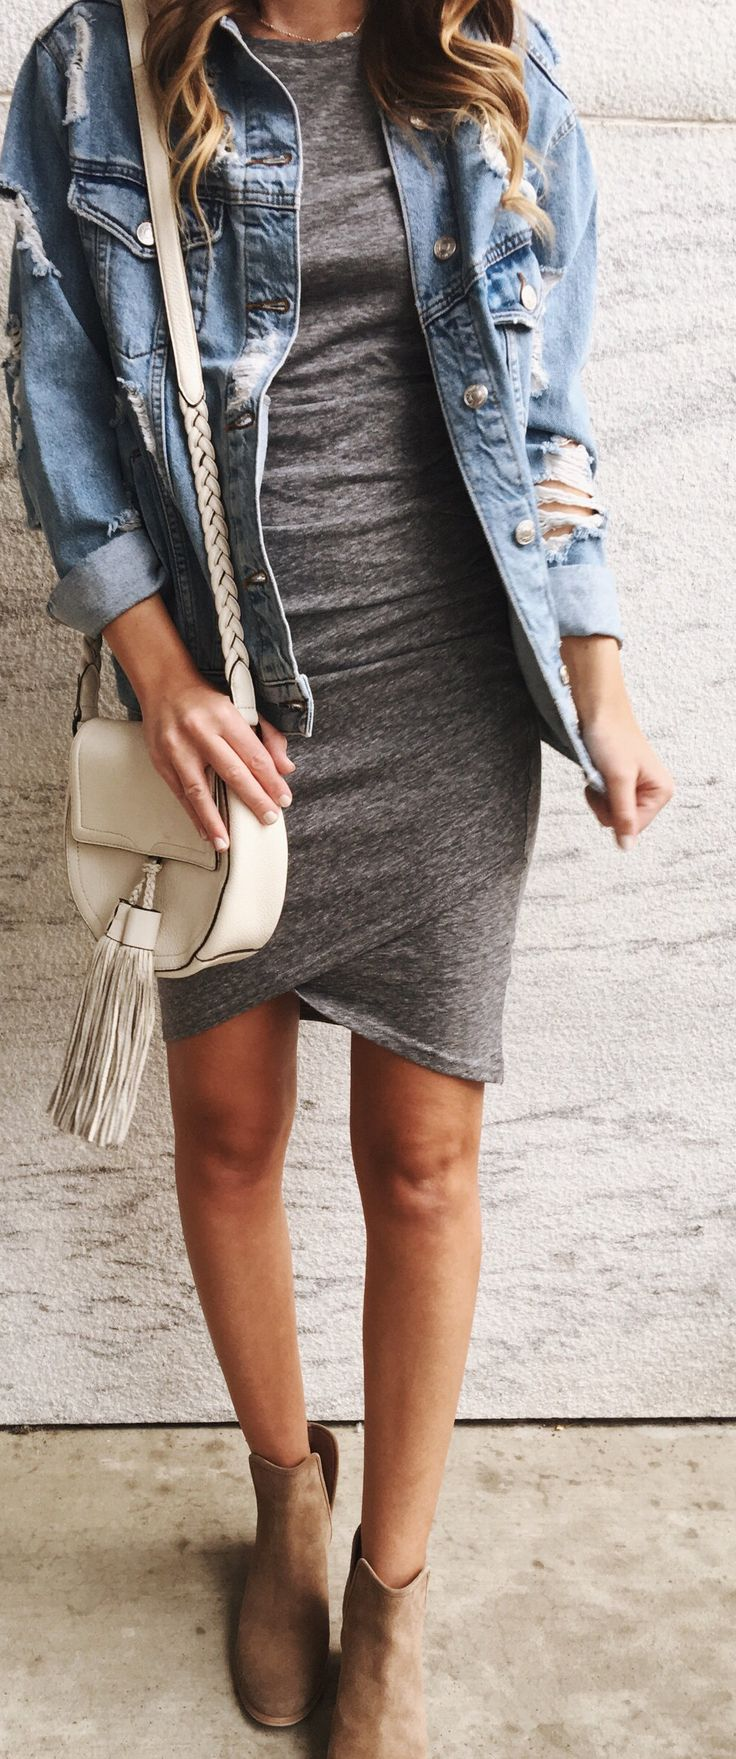 #spring #outfits woman wearing gray denim jacket and gray cocktail dress. Pic by @twentiesgirlstyle